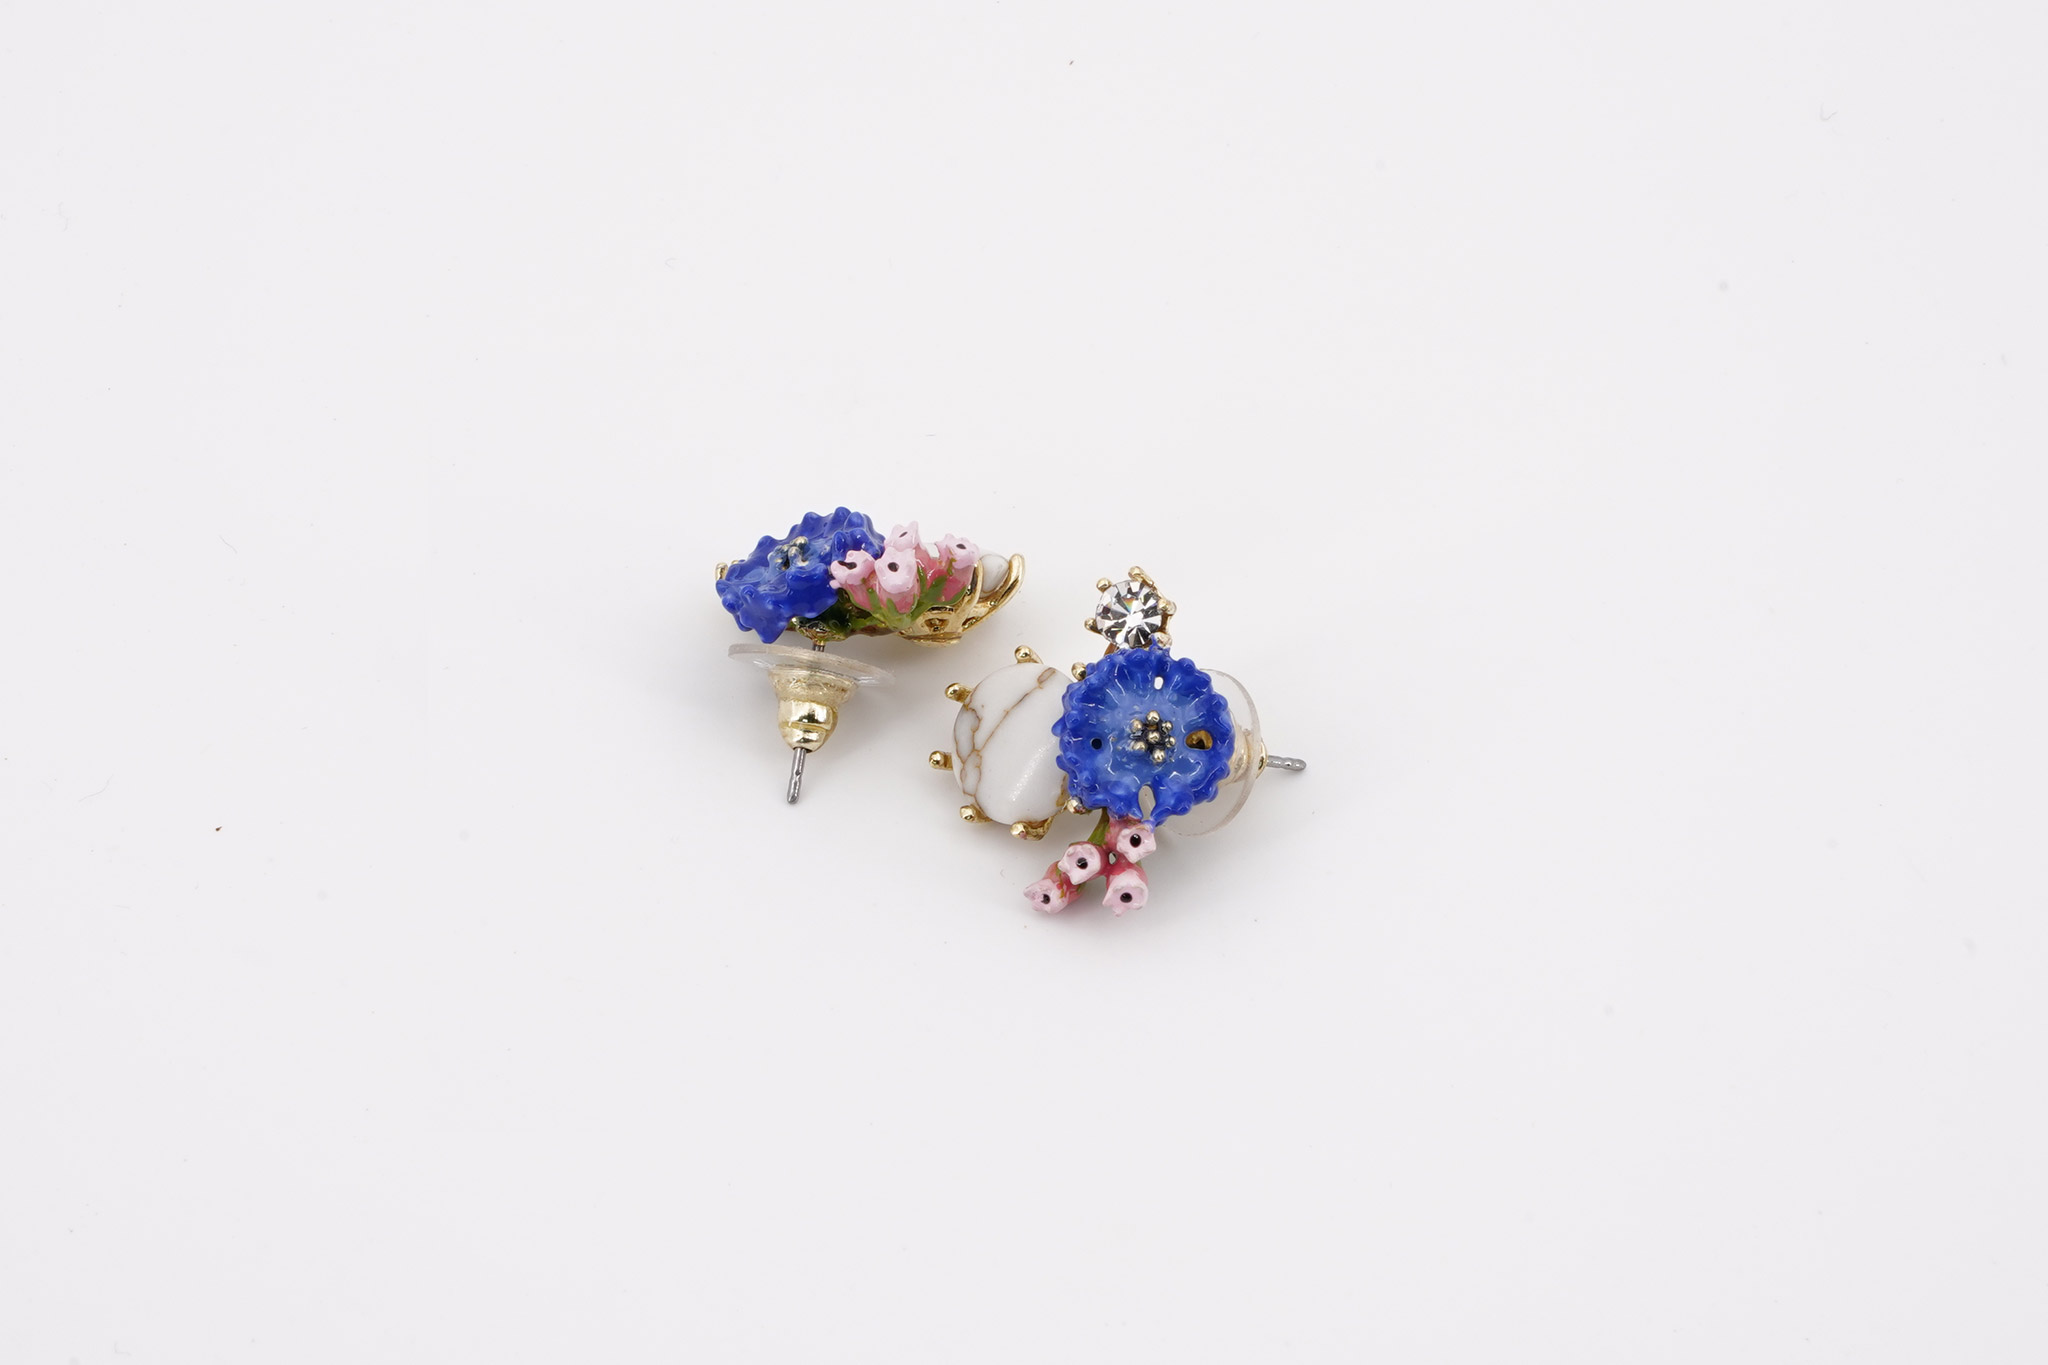 LES NEREIDES BLUE BIRDS EARRING COMES WITH BOX OR BAG